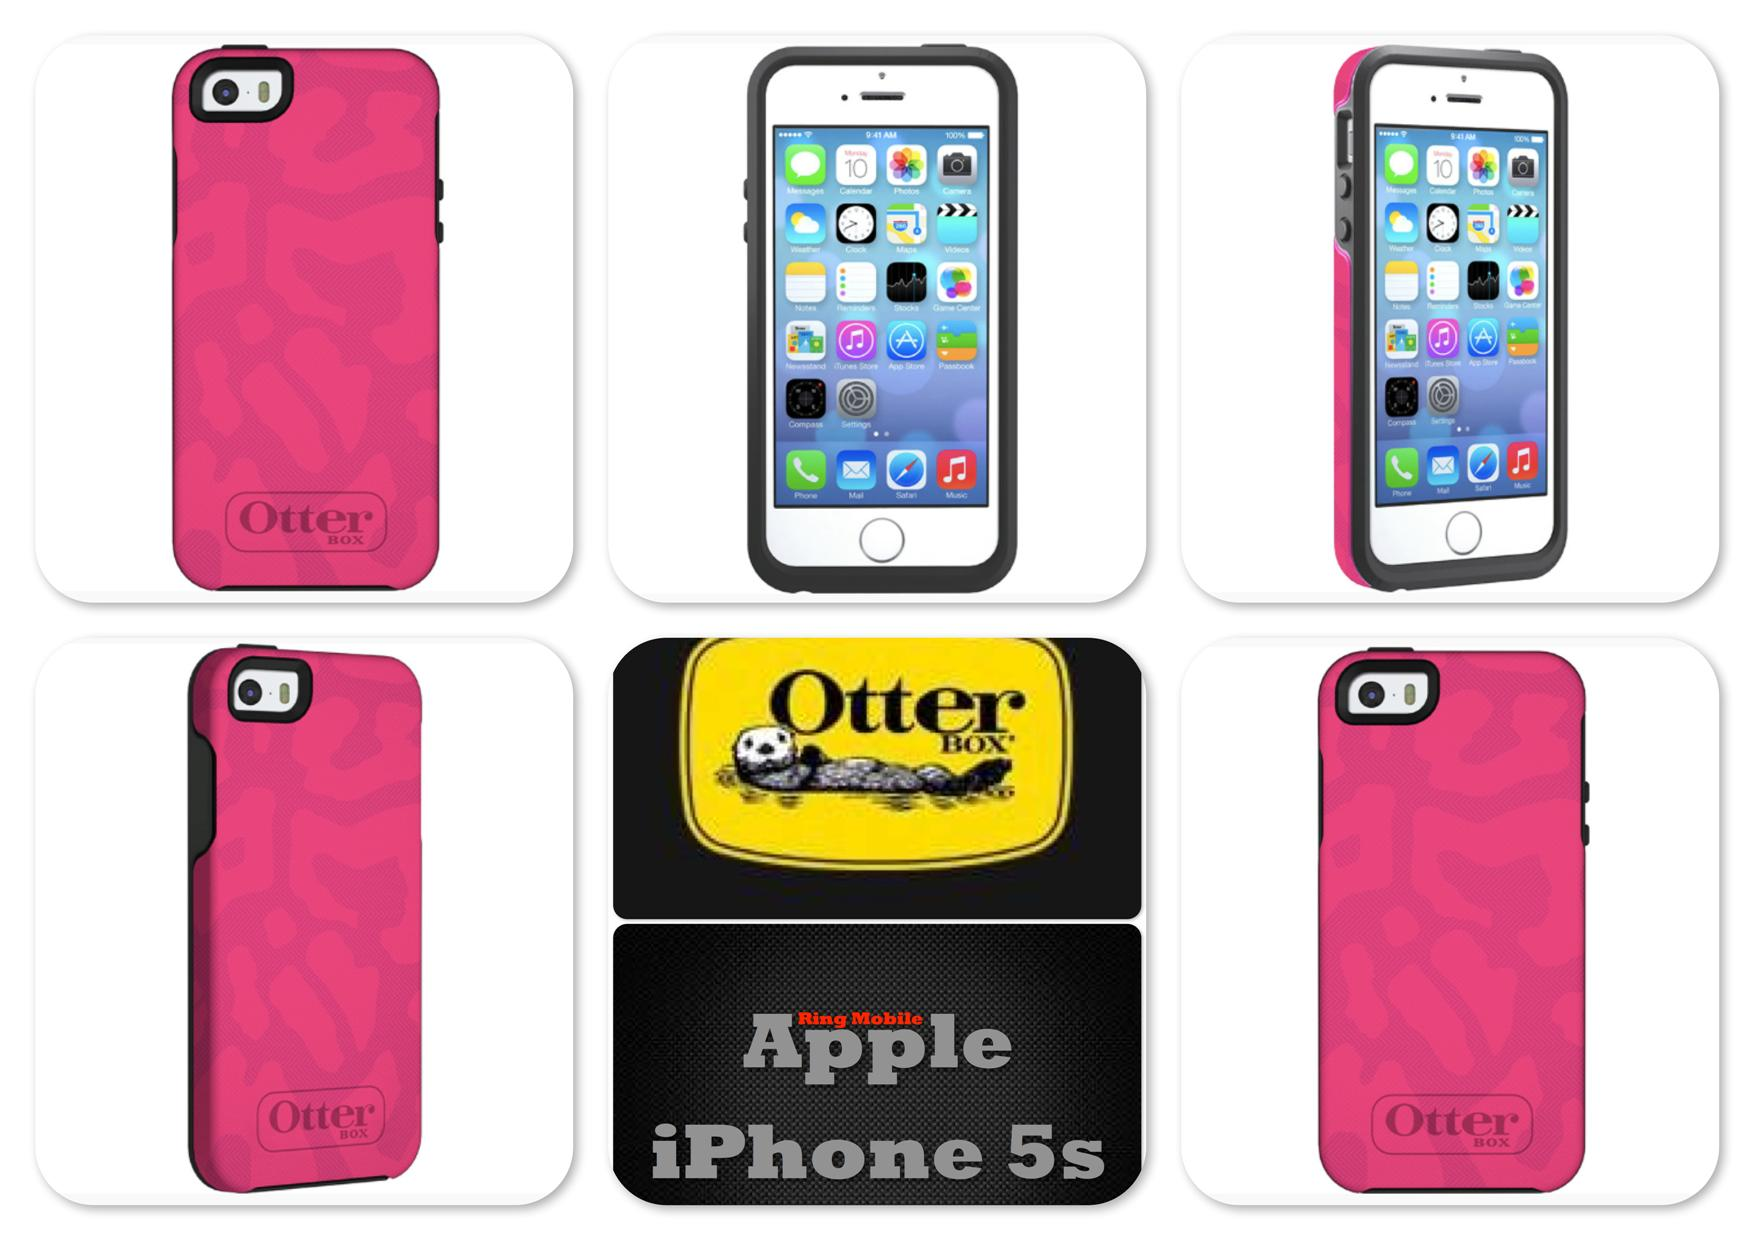 Bdotcom = Apple iPhone 5 / 5s Otterbox Symmetry Series @ Cheetah Pink